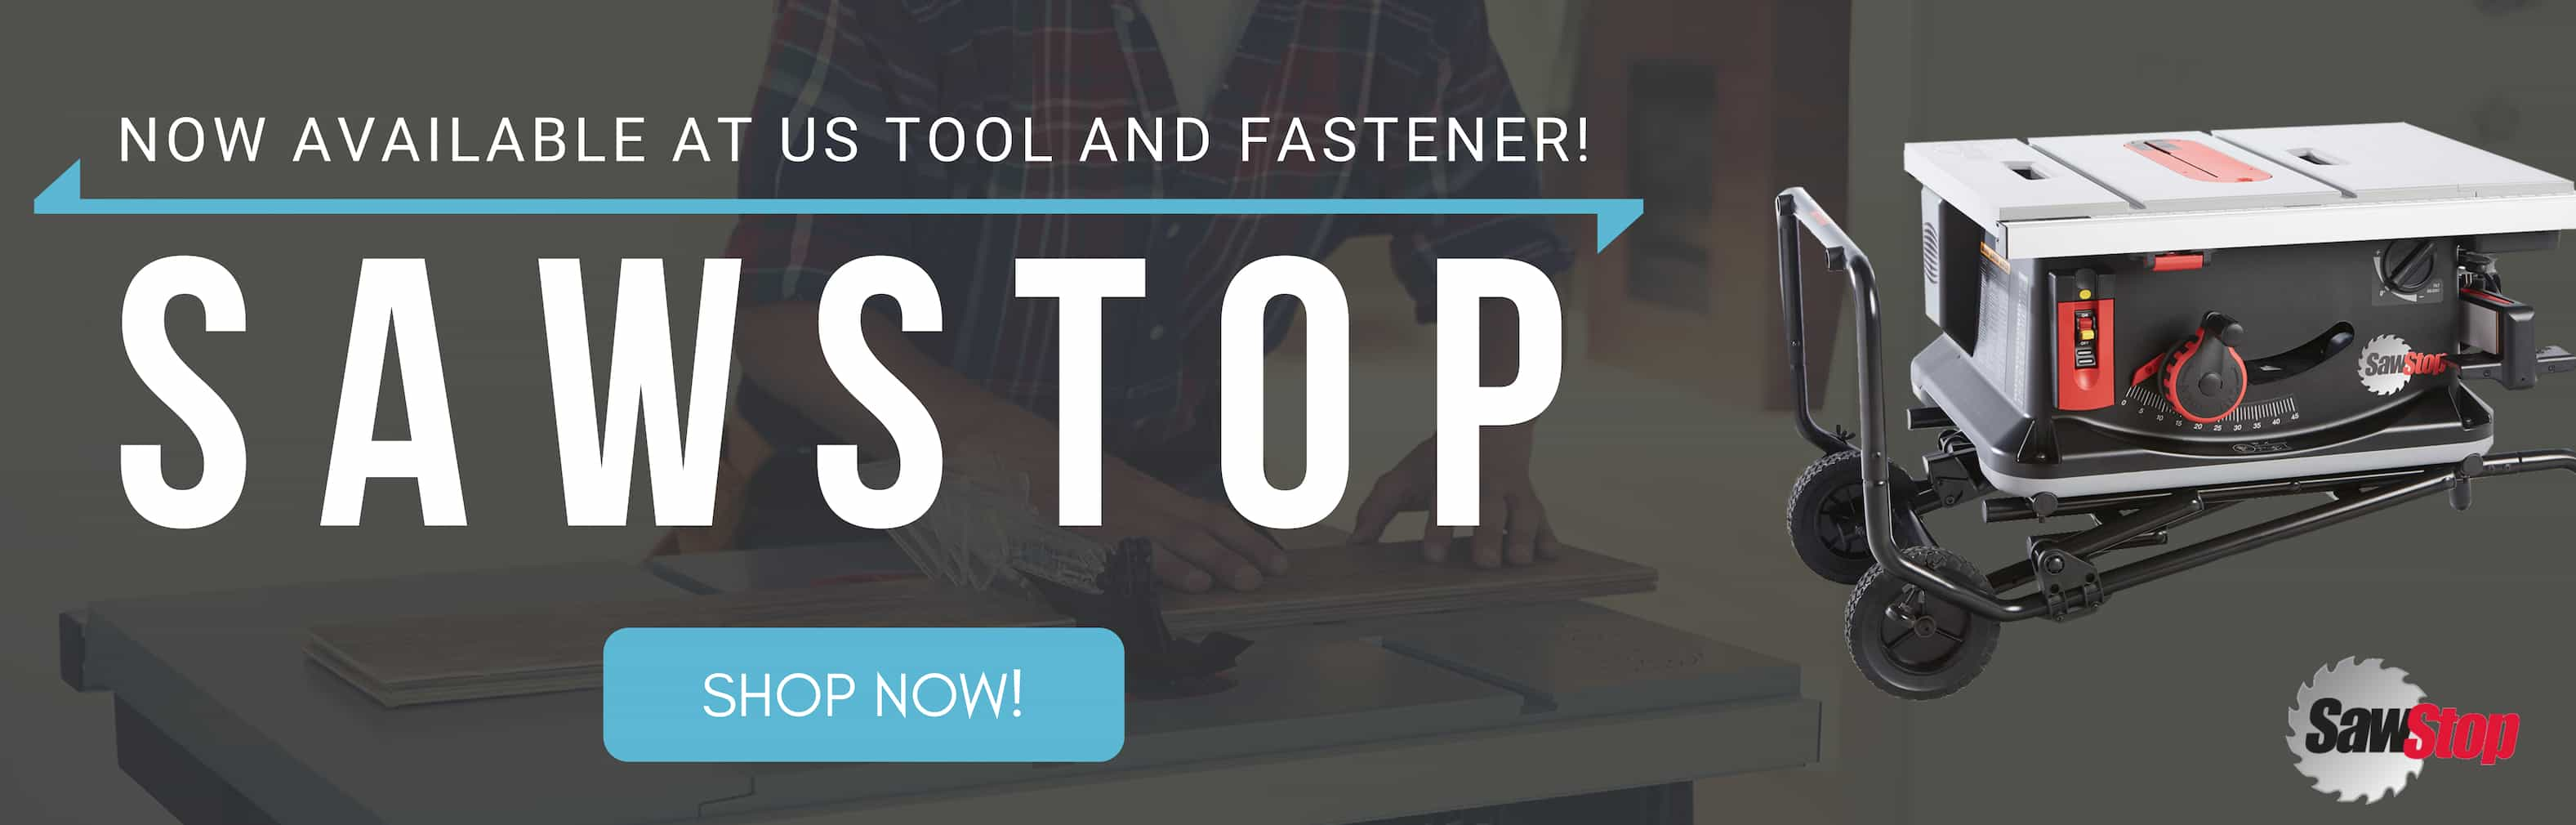 US Tool and Fastener Promo